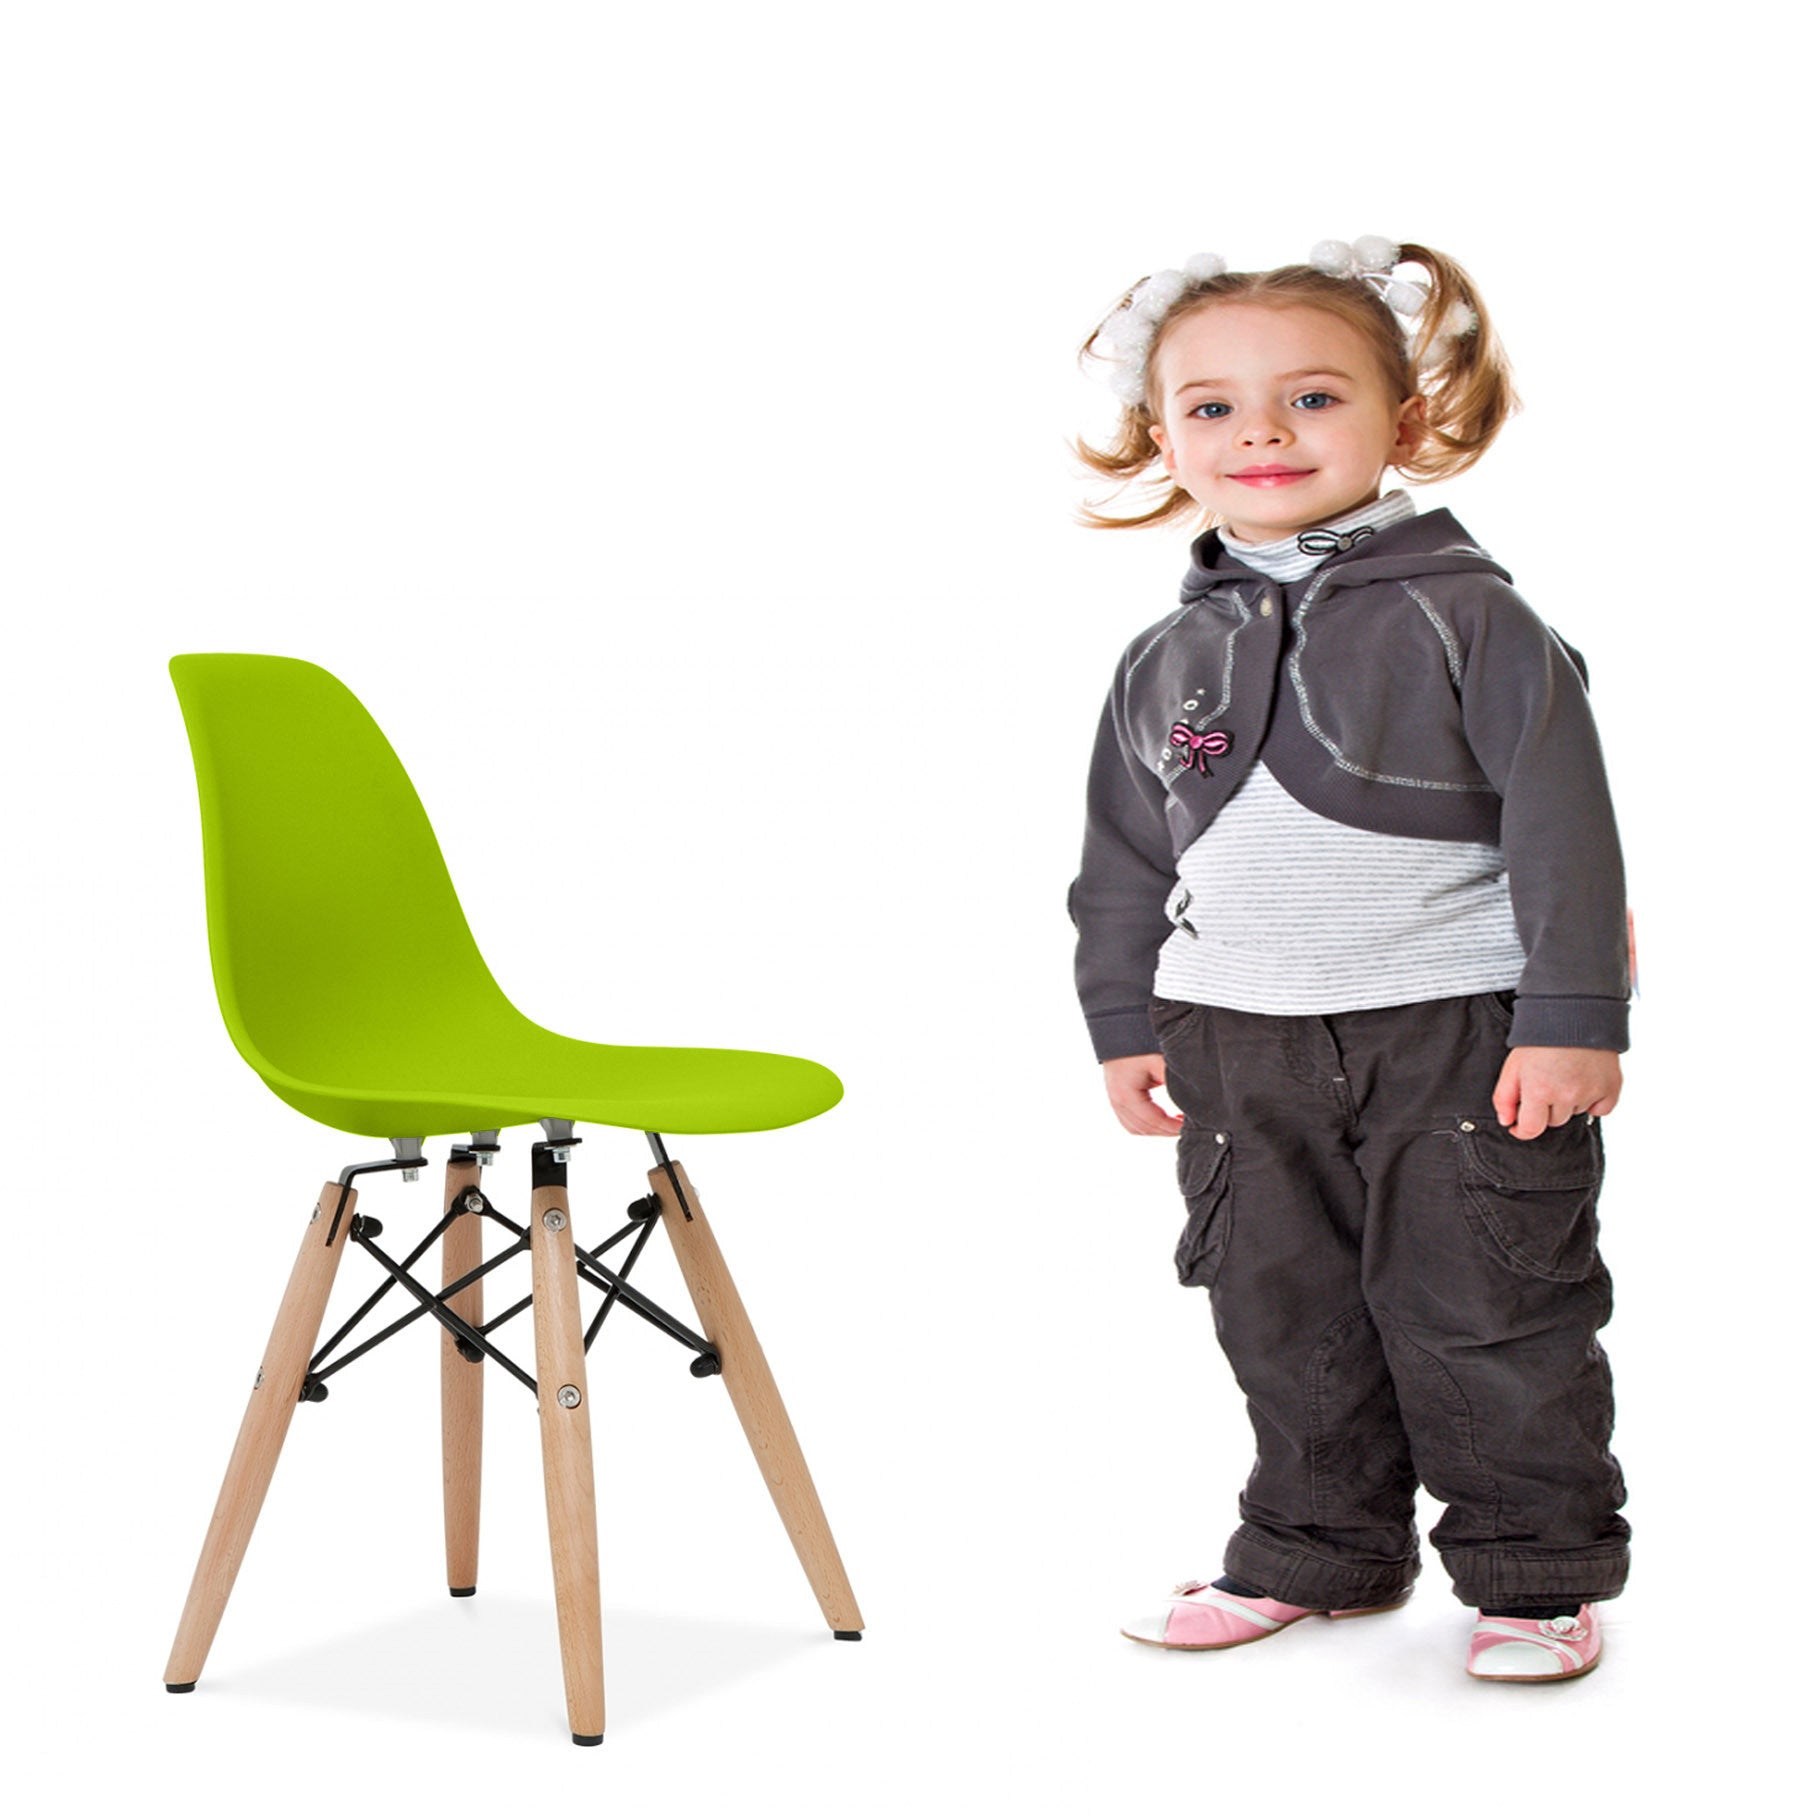 Kids Chair -Plastic- MSK0055W PC-0117W-G -  كرسي اطفال - بلاستيك - Shop Online Furniture and Home Decor Store in Dubai, UAE at ebarza